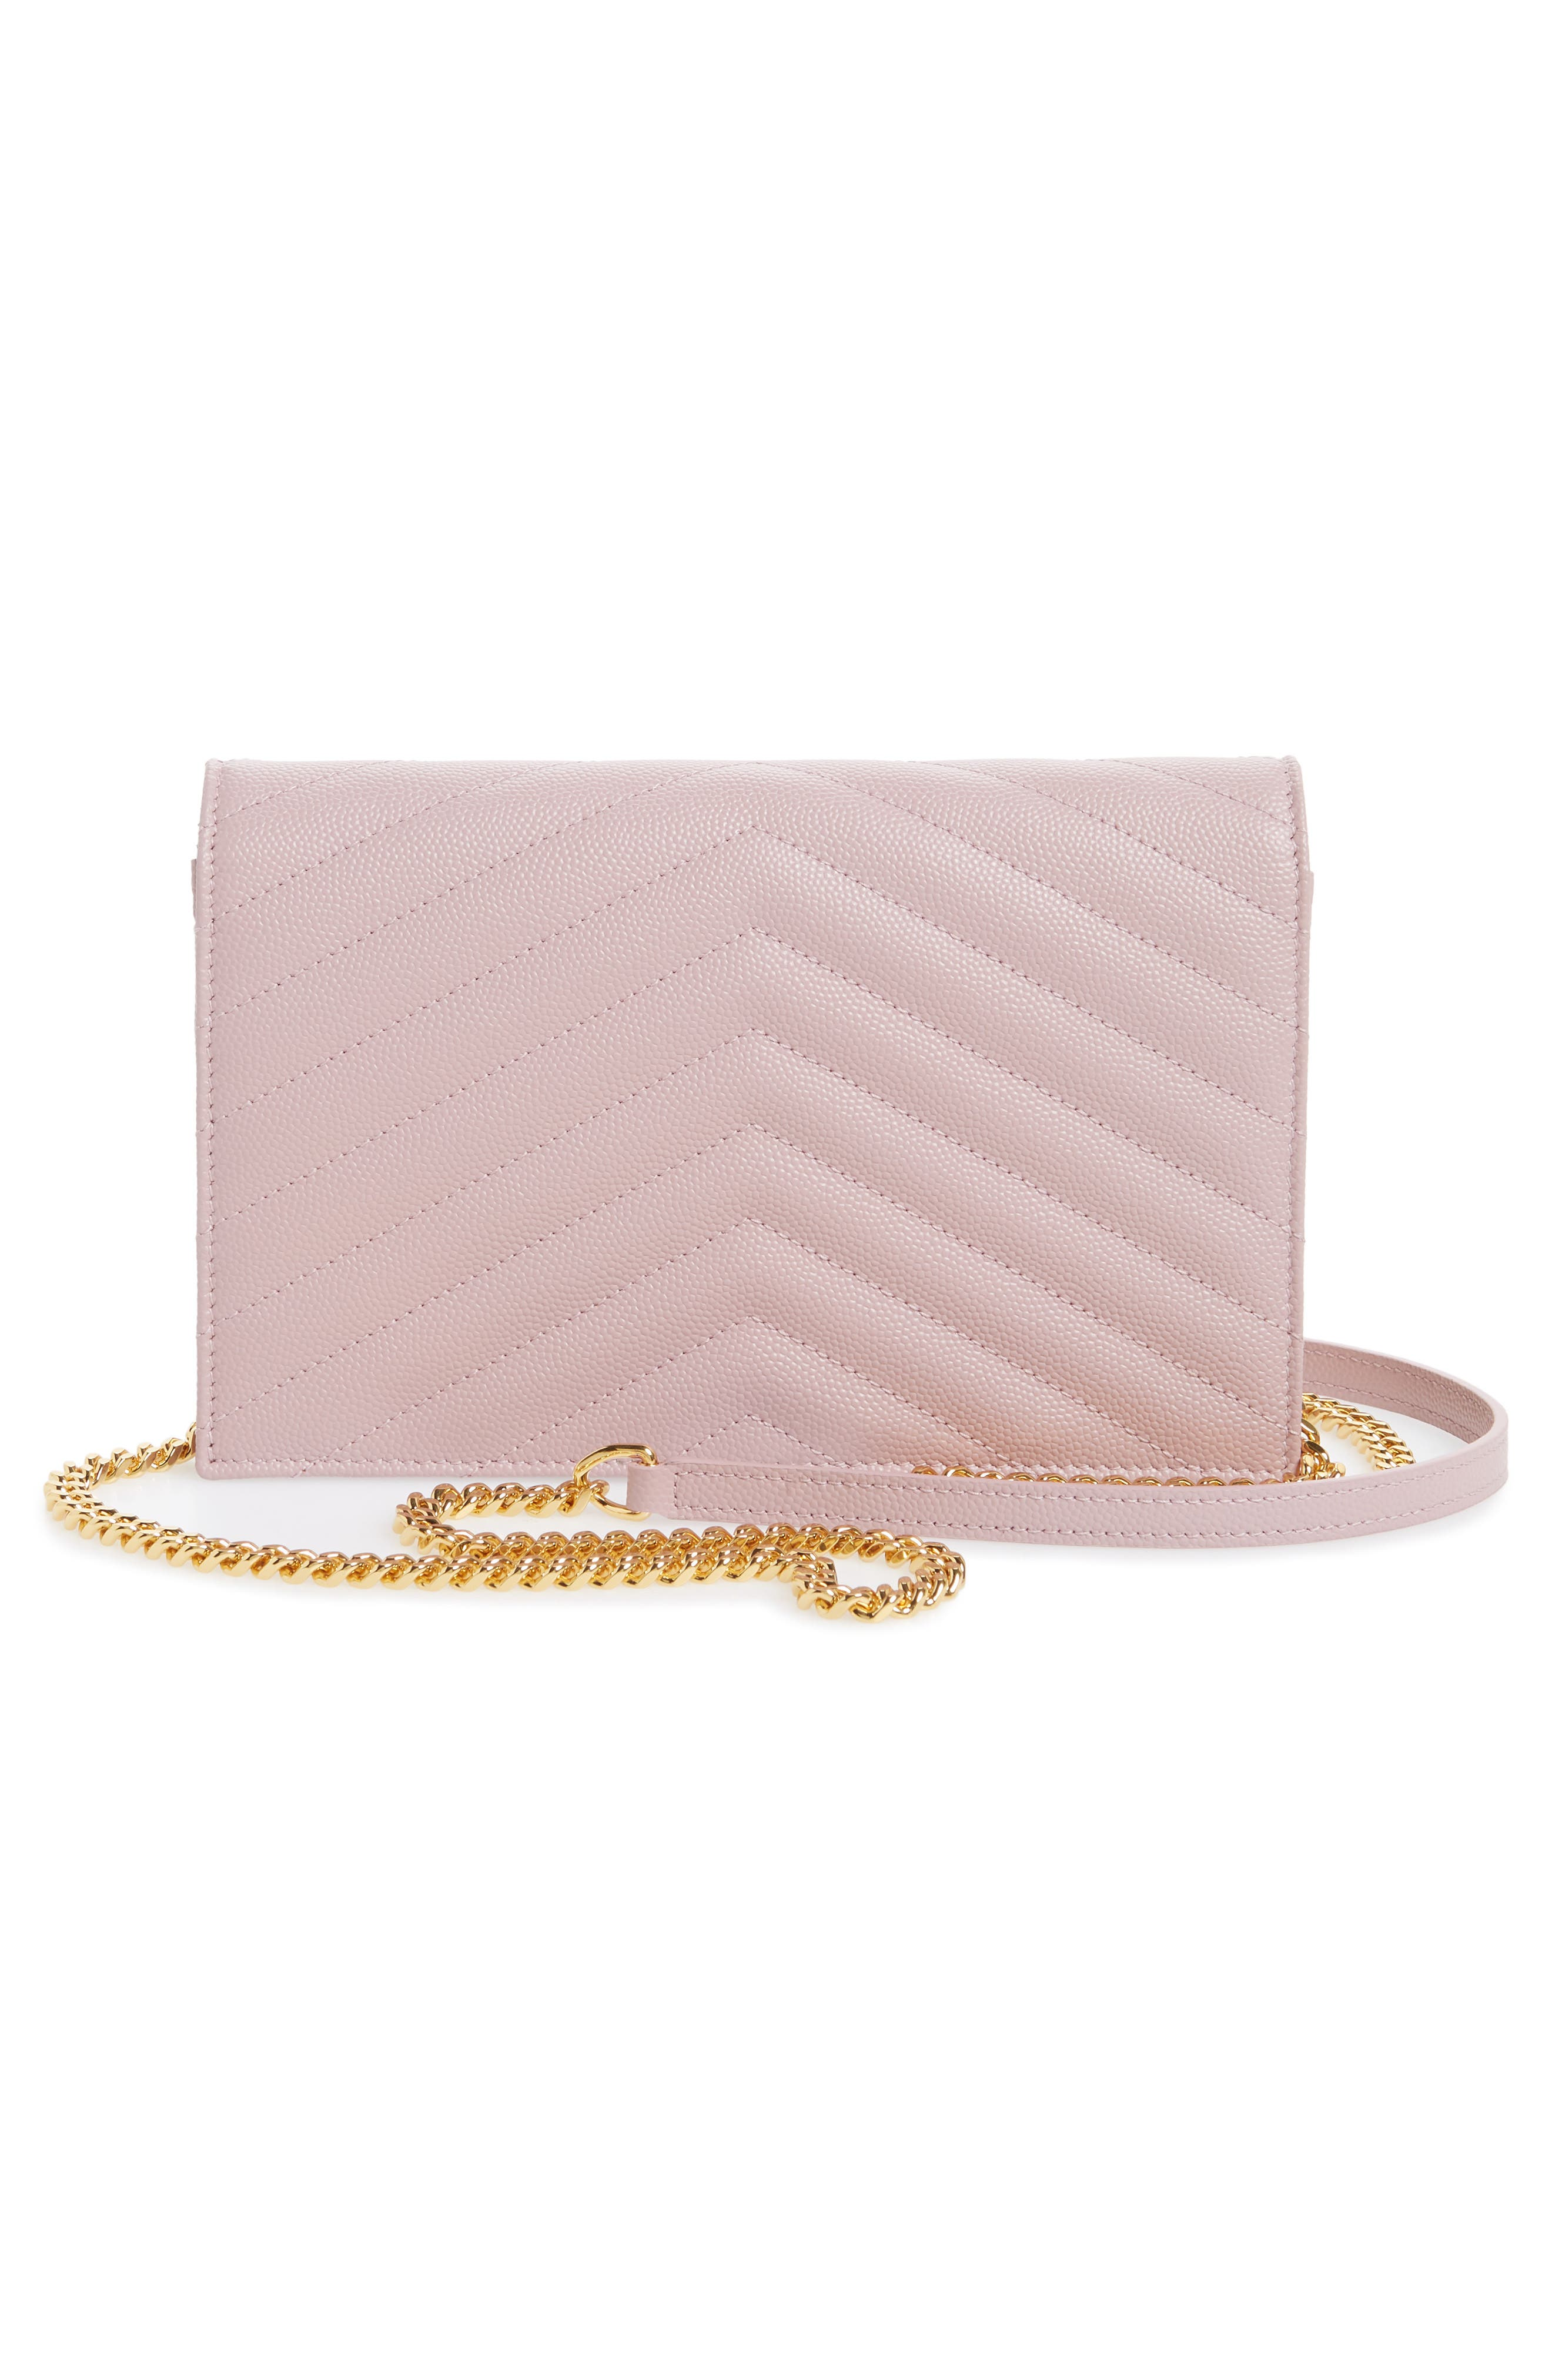 'Small Mono' Leather Wallet on a Chain,                             Alternate thumbnail 3, color,                             TENDER PINK